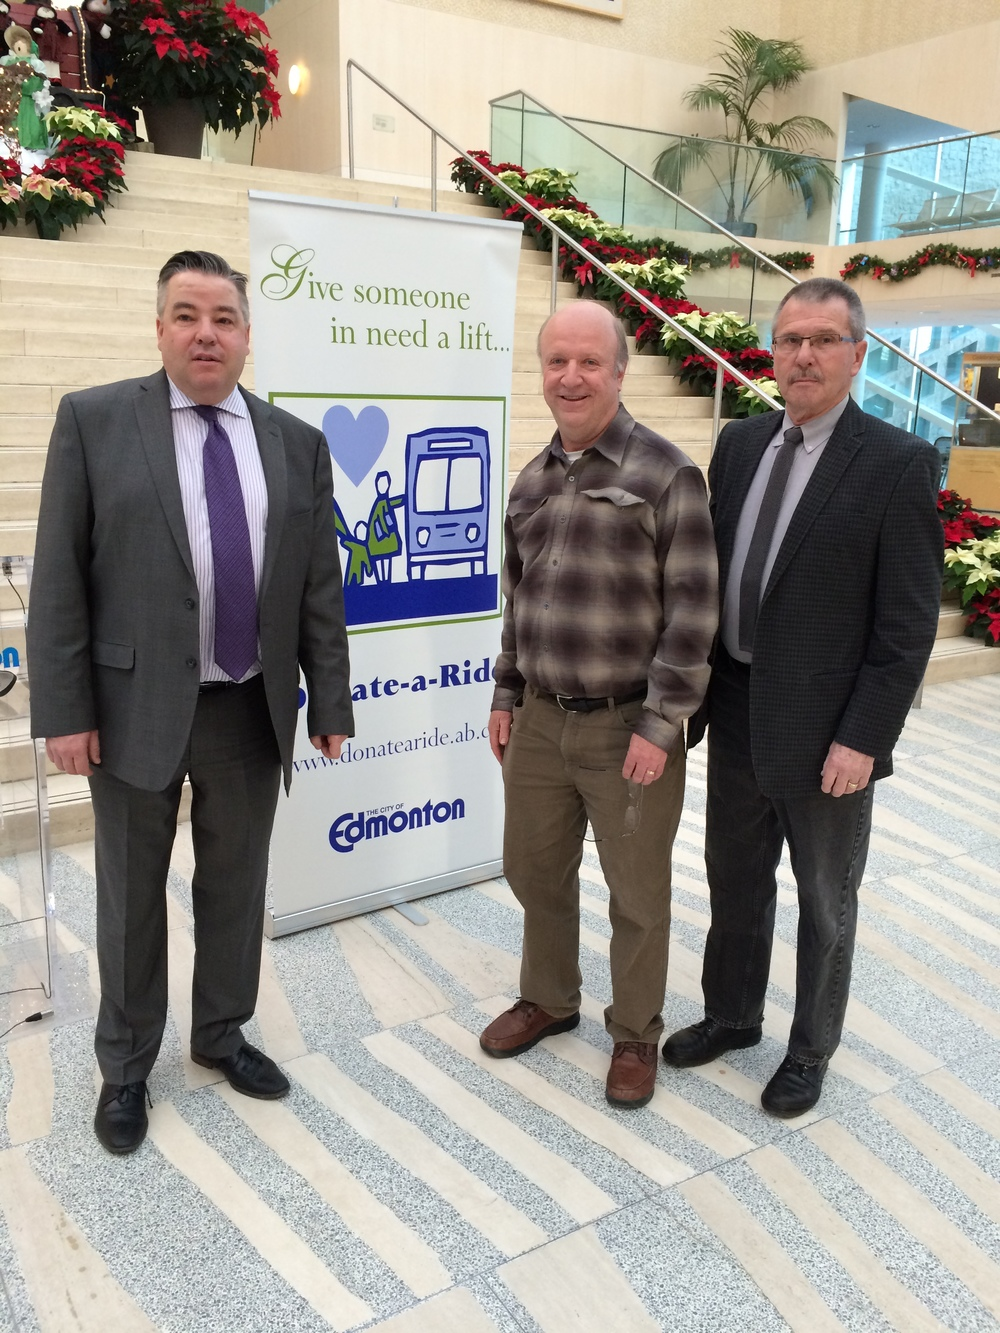 Donate-A-Ride kick off, December 15, 2014.  Councillor Anderson with Councillor Loken and former Councillor Alan Bolstad, who started the Donate-A-Ride program.